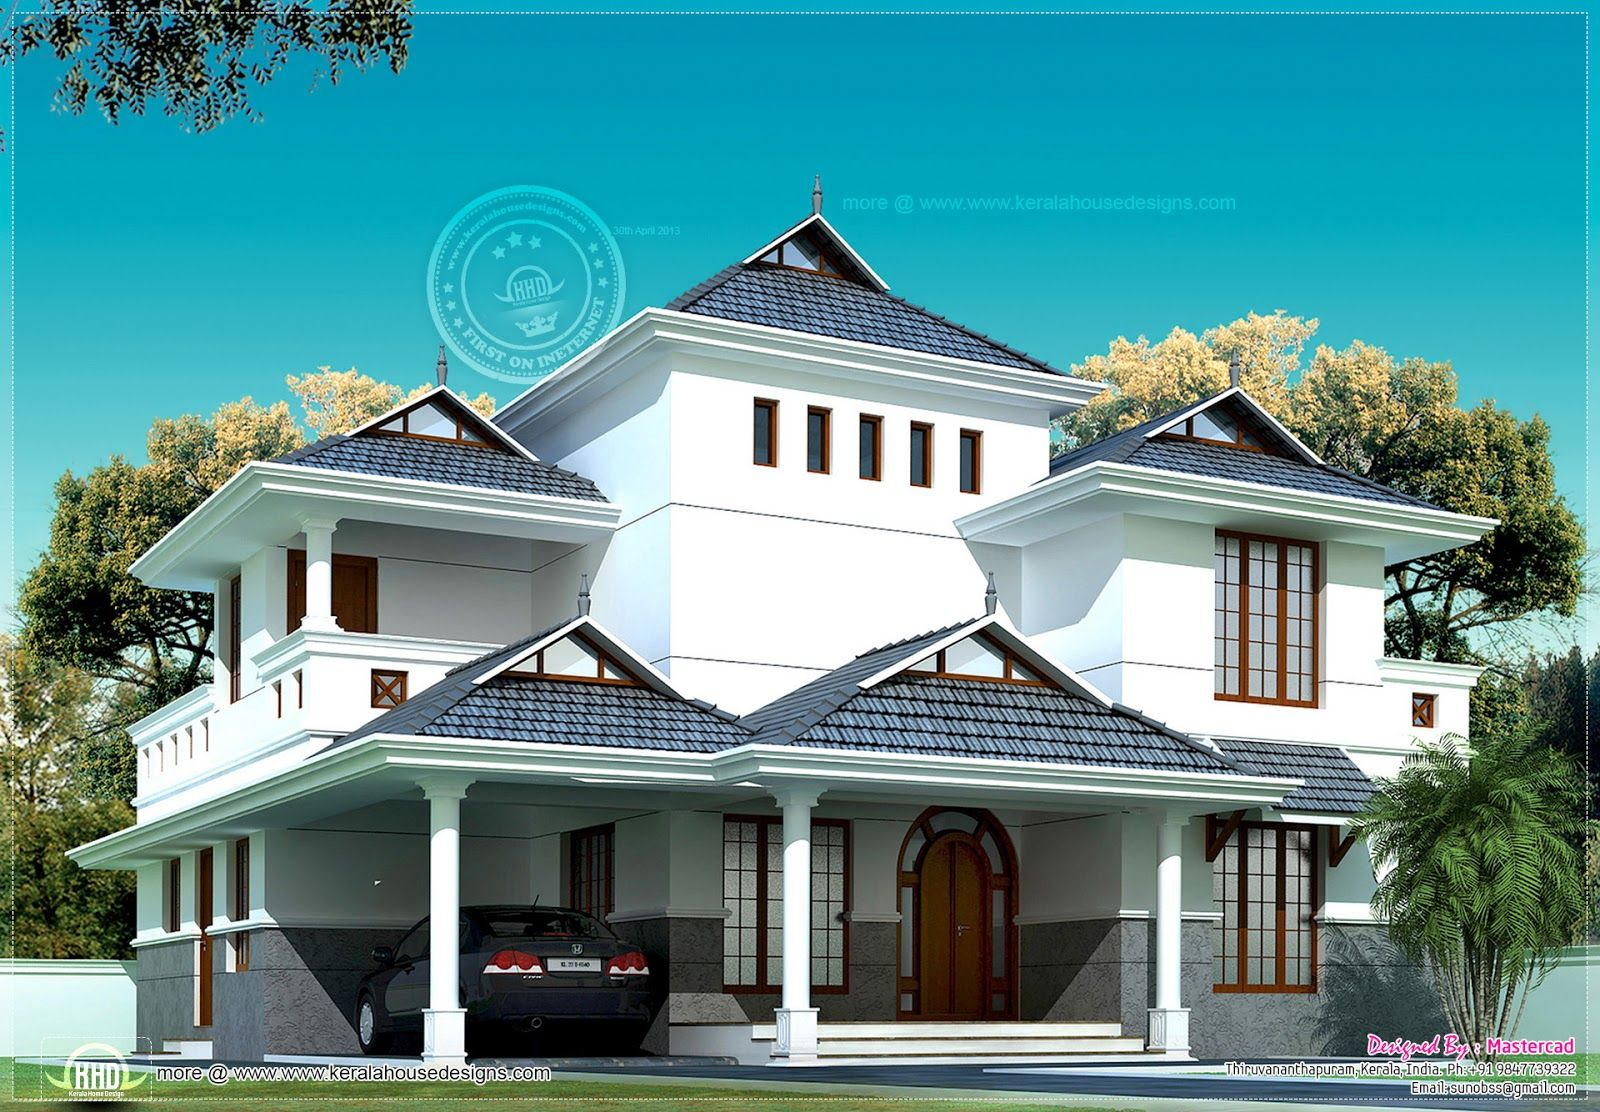 Home Design 2020 Part - 22: Veeduonline - Page 10 Of 72 - Kerala Home Designs U0026 Free Home Plans | Home  Plan | Pinterest | Kerala